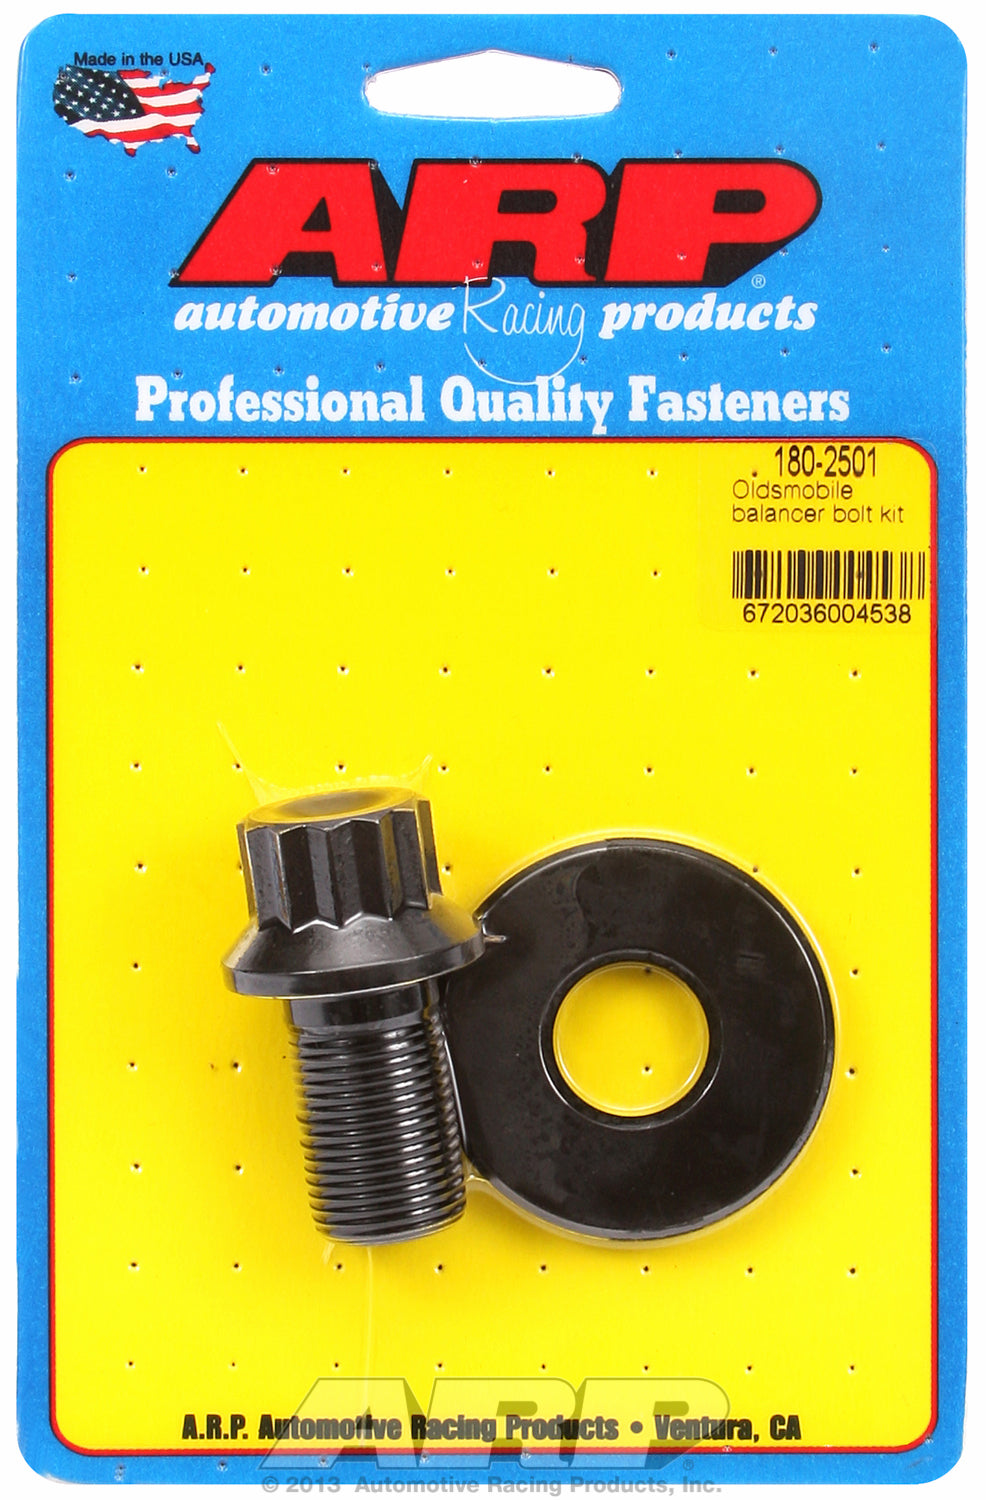 Harmonic Damper Bolt Kit for Oldsmobile V8